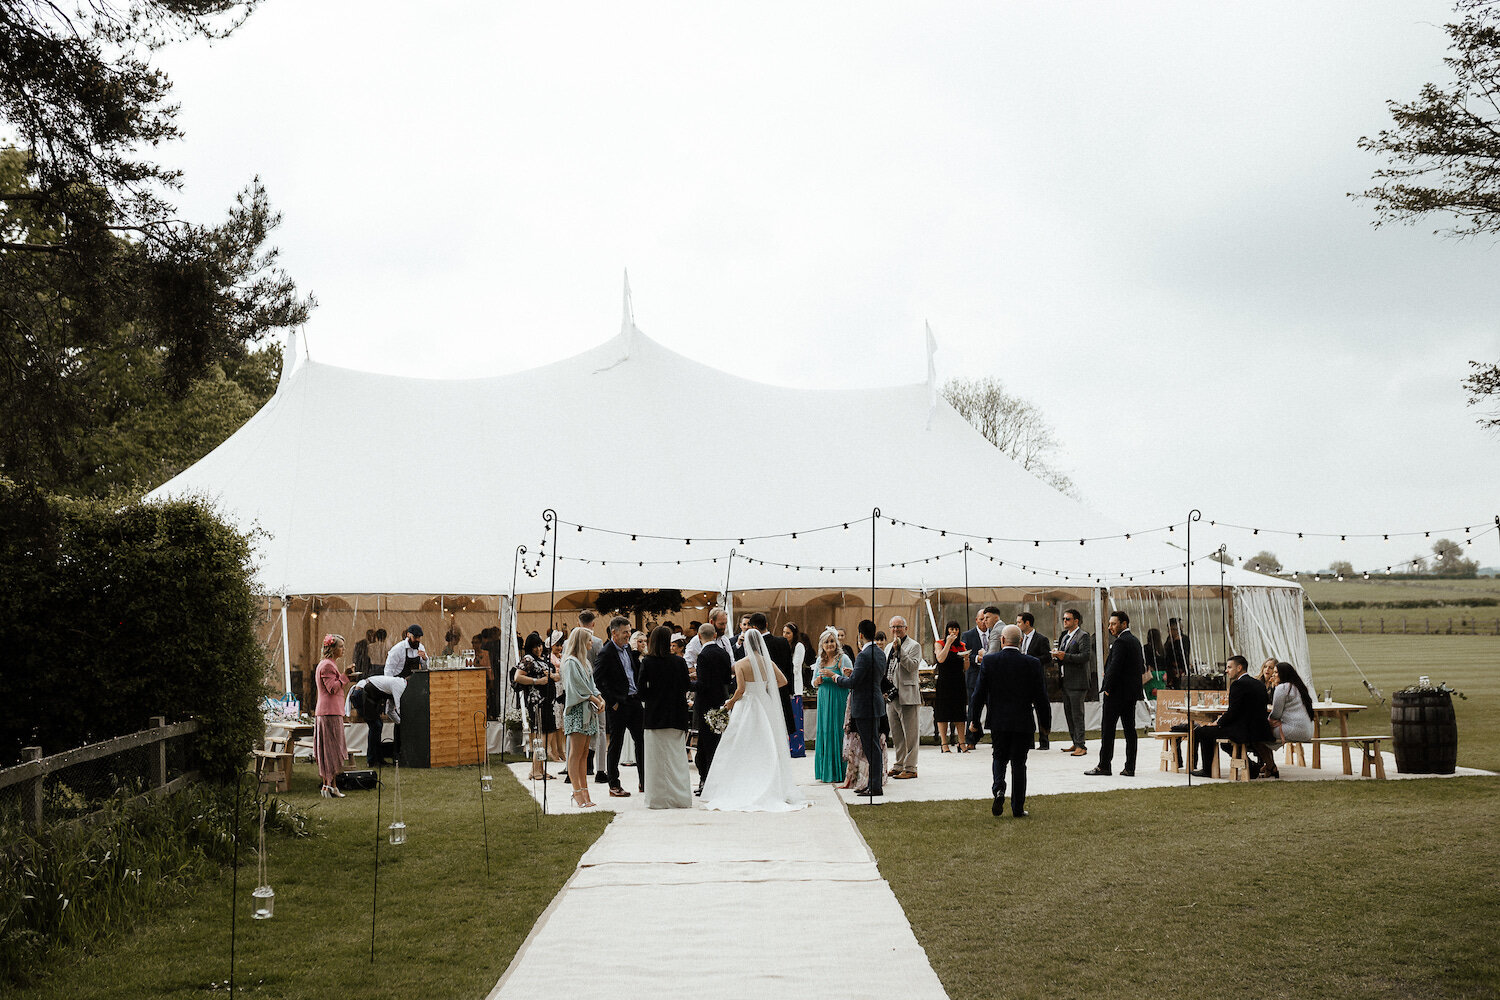 15_India-Sean-PapaKåta-Sperry-Tent-Wedding-Caitlin-Jones-Photography-Sperry-Tent.jpg